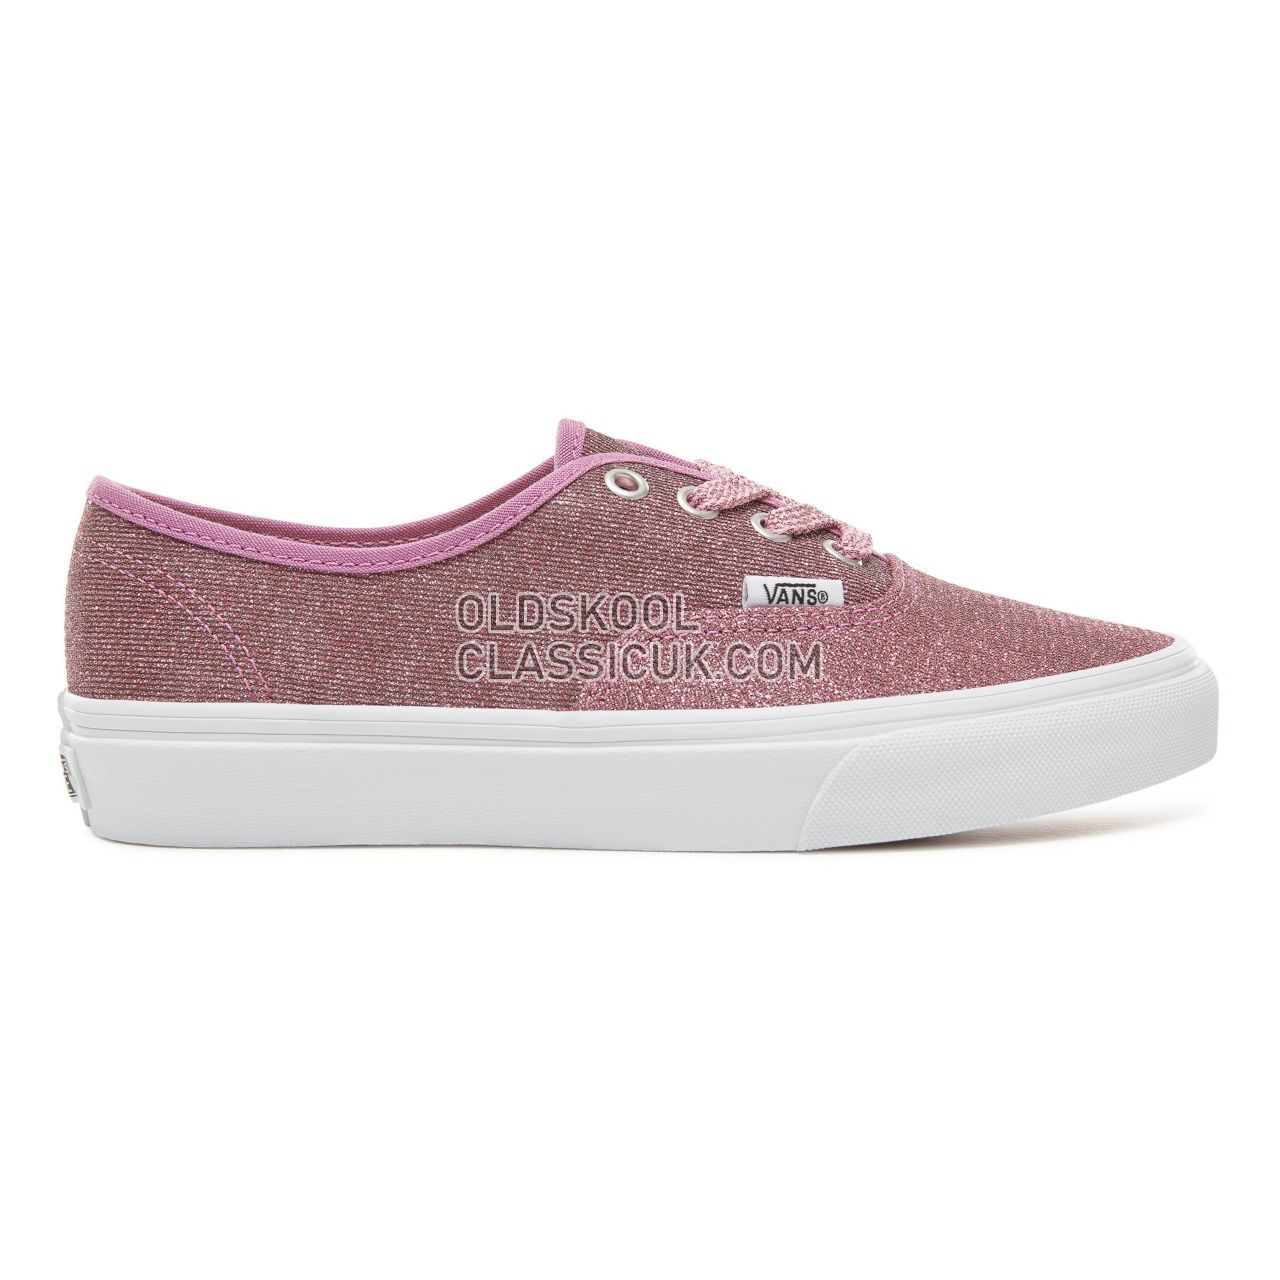 Vans Lurex Glitter Authentic Sneakers Womens (Lurex Glitter) Pink/True White VA38EMU3U Shoes